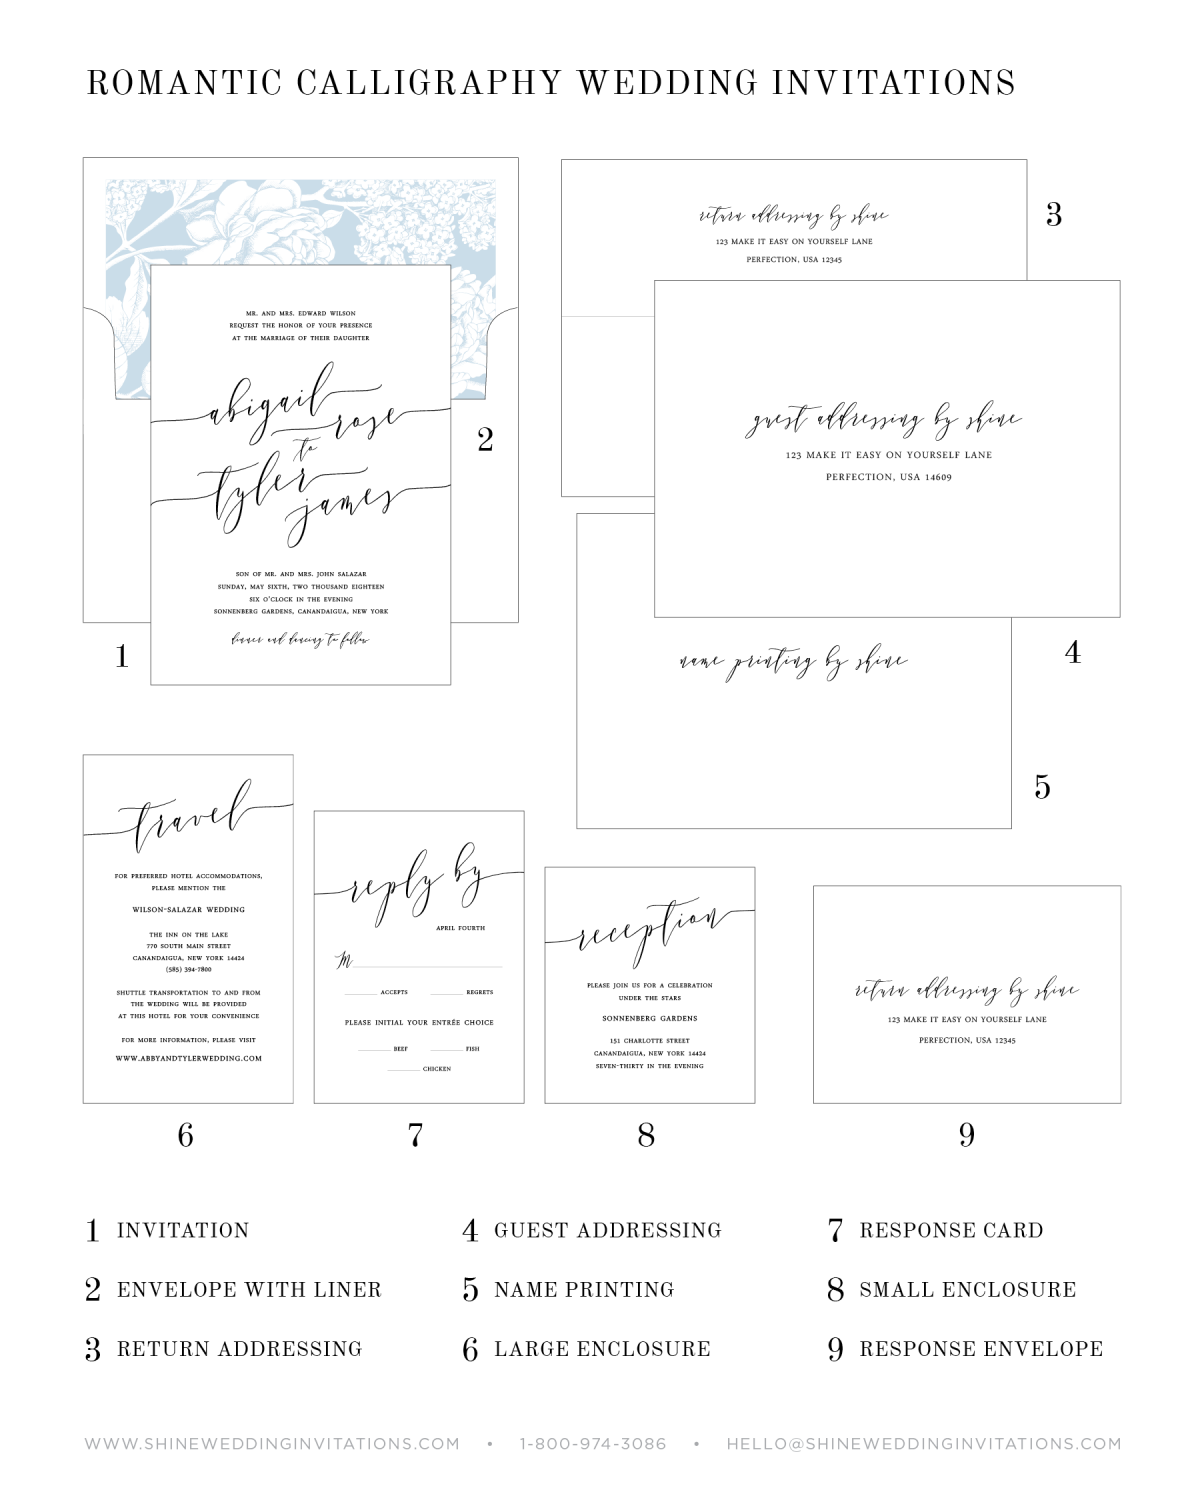 Wedding Invitation Chart and Pieces Diagram